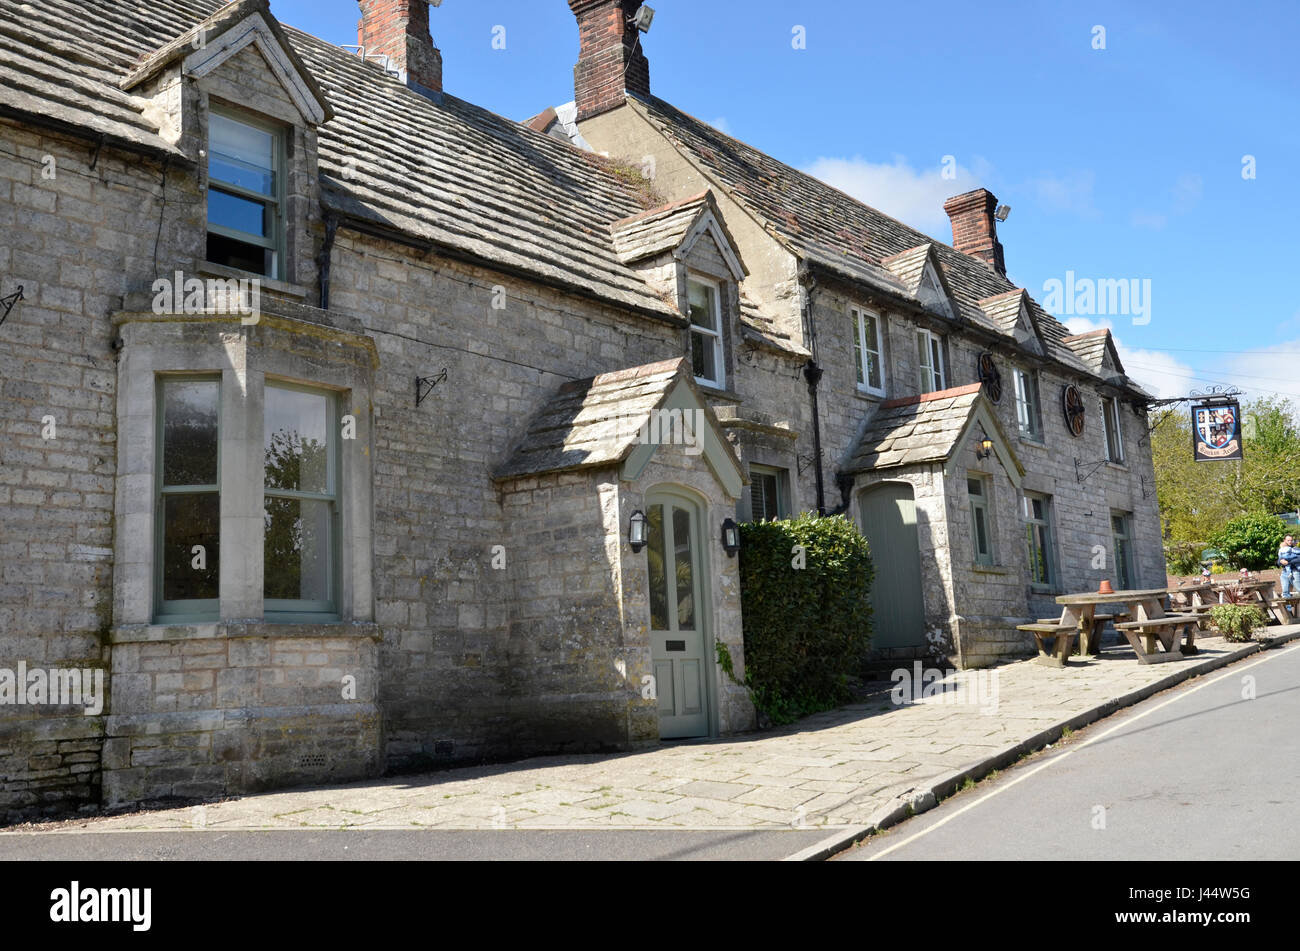 The Bankes Arms public house in Studland, Dorset, home of the Isle of Purbeck brewery - Stock Image